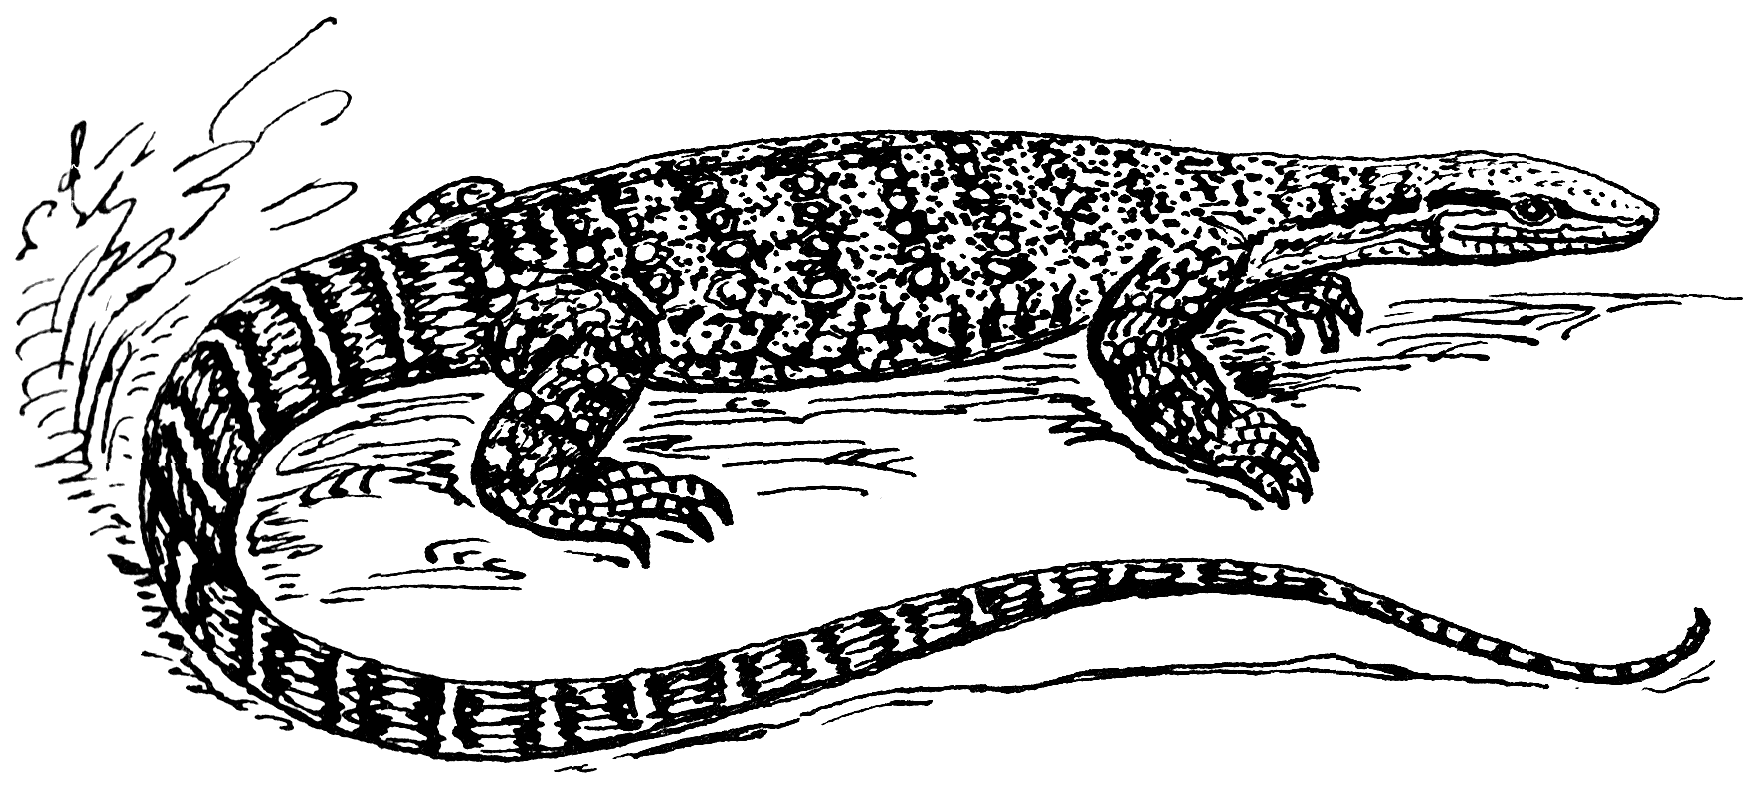 filemonitor lizard psfpng